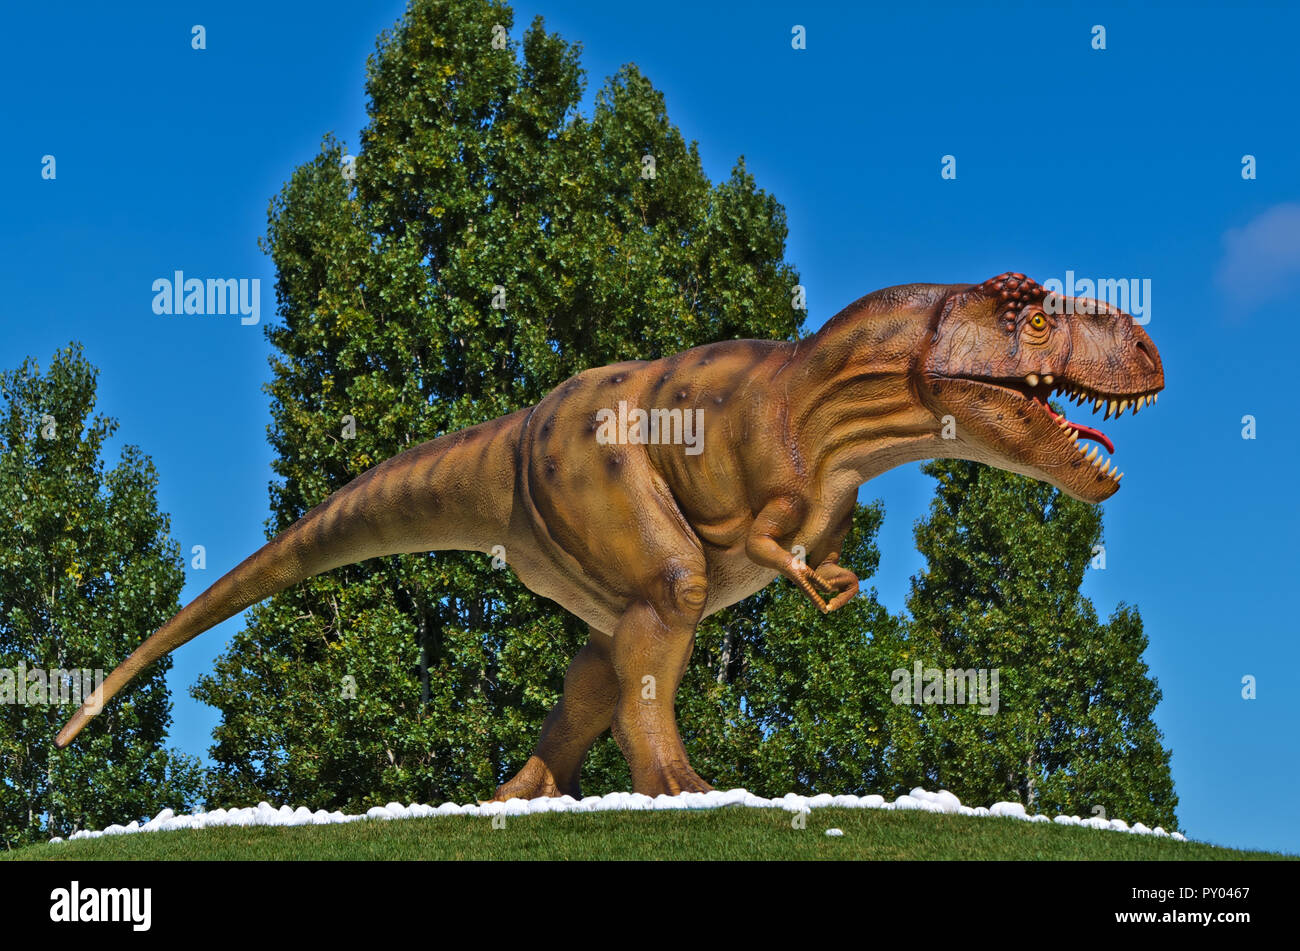 T-Rex from the Dino-Park in Lourinha, Portugal - Stock Image